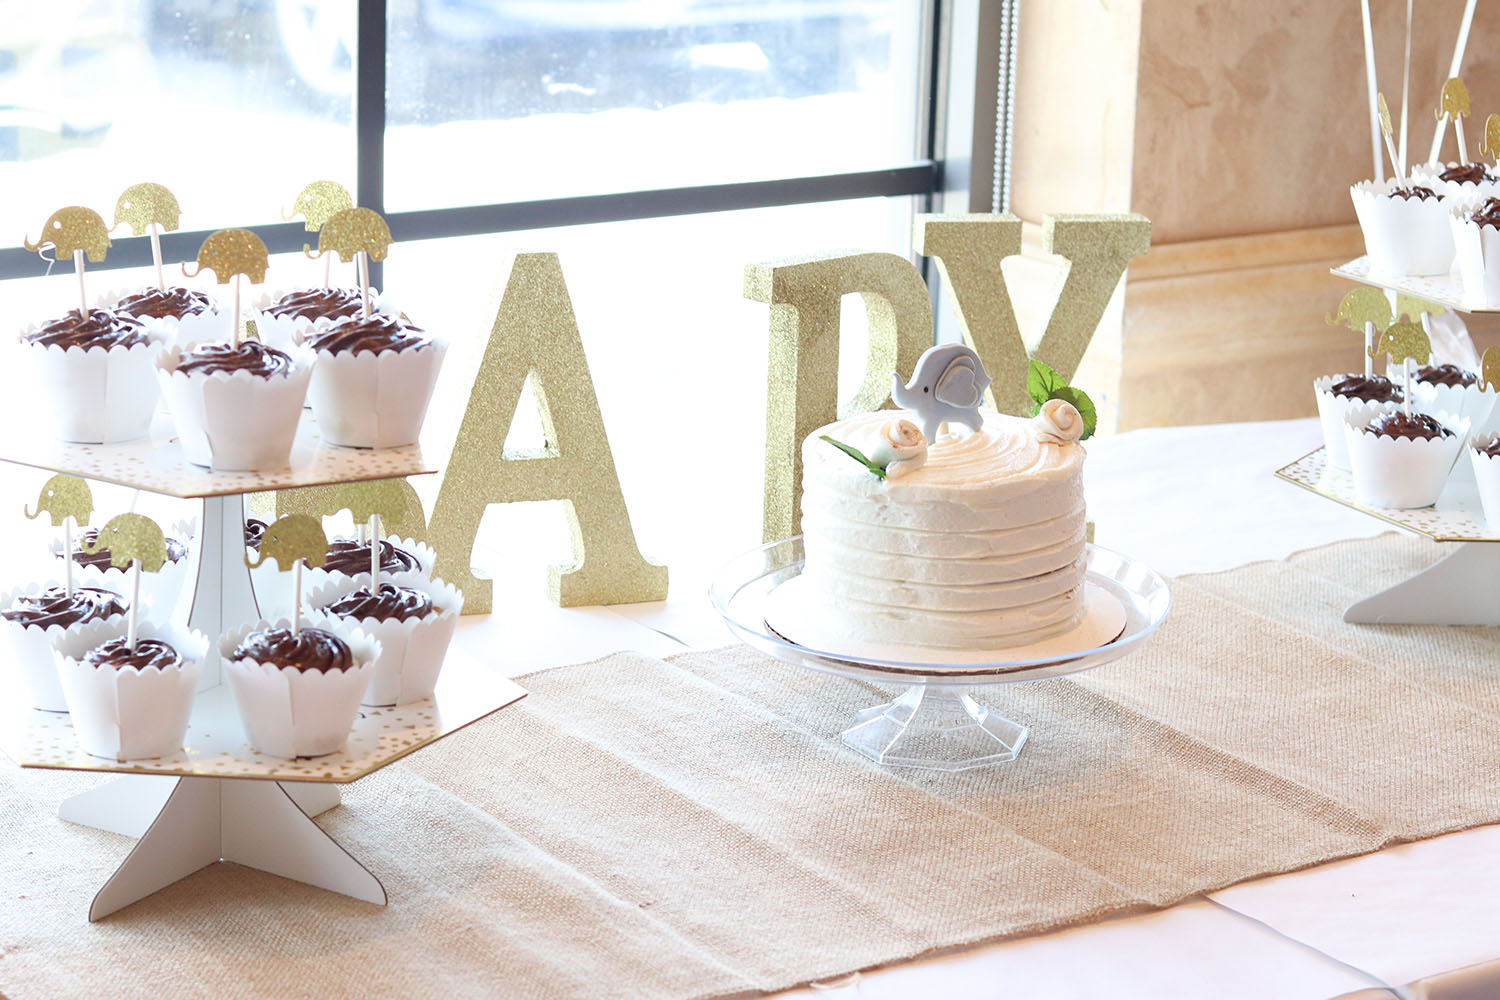 White, Ivory, Rustic Baby Shower Decor with Elephant Cake Topper | Brighter Darling Blog